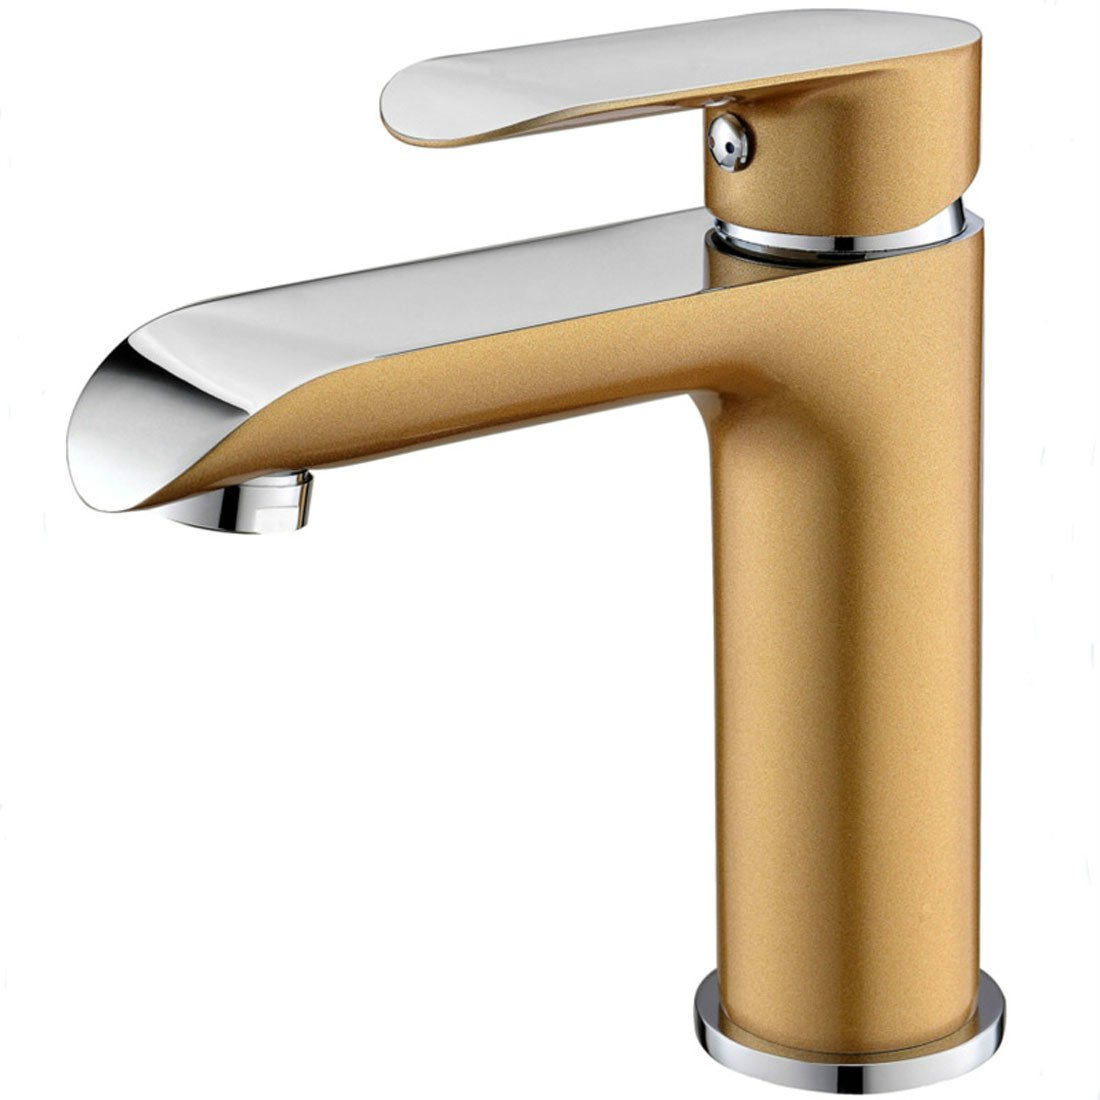 MDRW-All copper hot and cold basin faucet,F by MDRW